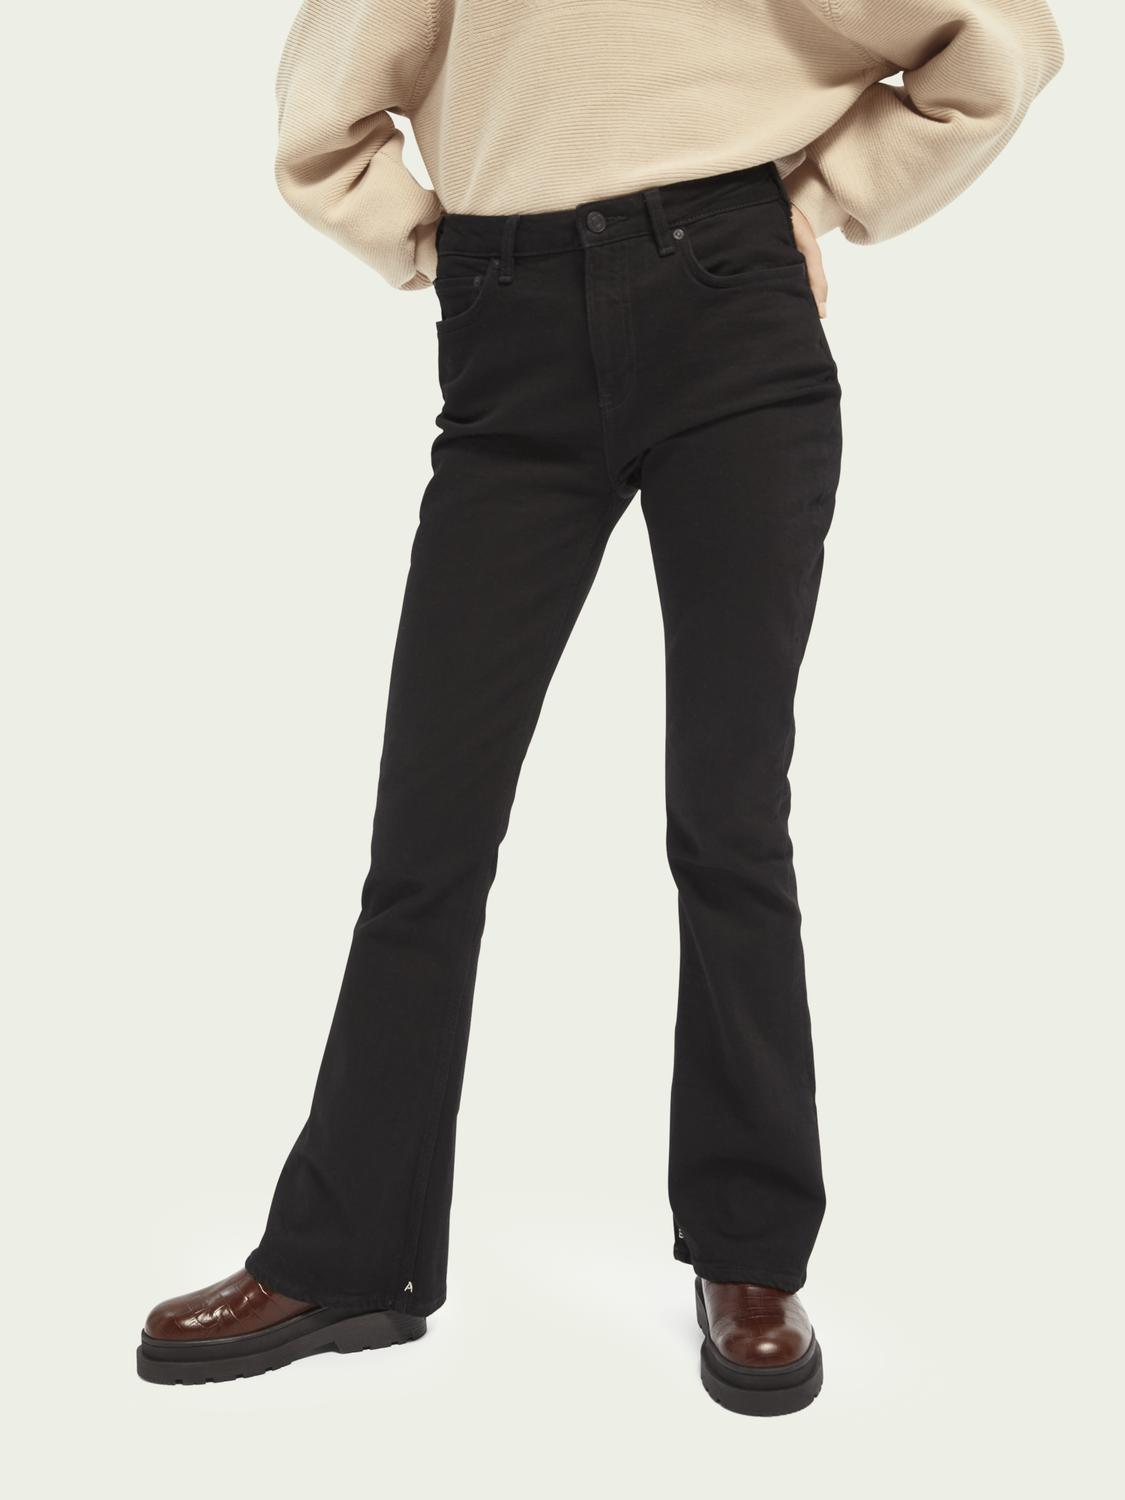 The Charm high-rise flared jeans ─ Black Shadow